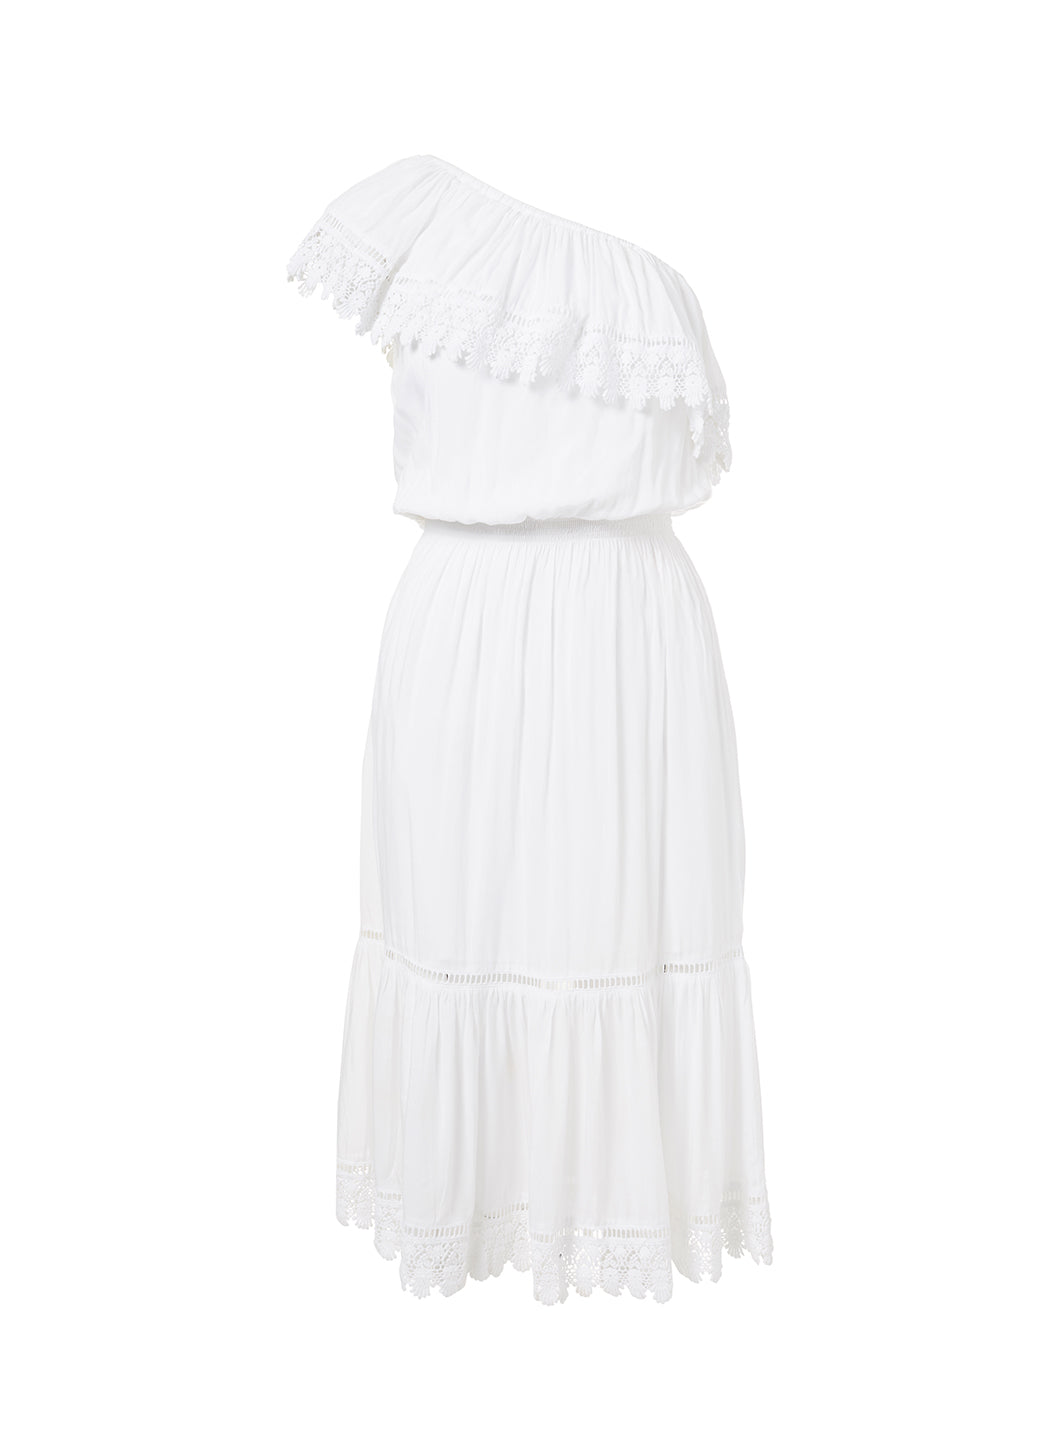 Jo White One Shoulder Embroidered Frill Midi Dress - Melissa Odabash Dresses & Kaftans